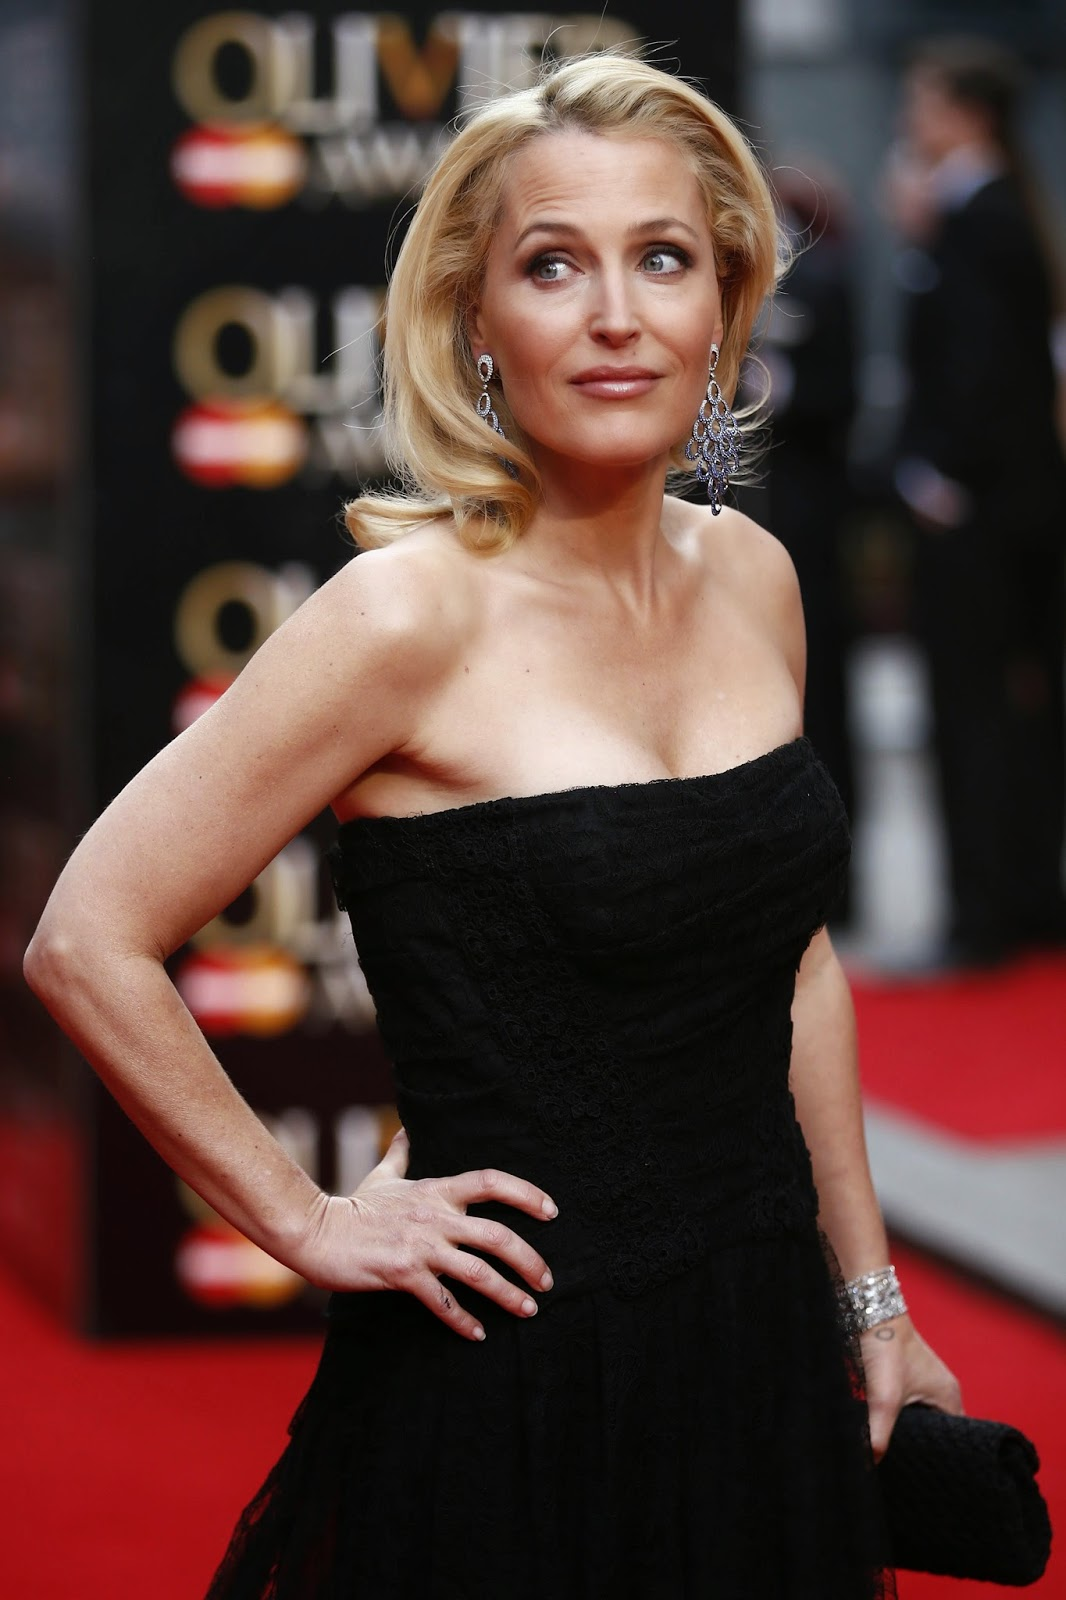 gillian anderson - photo #44